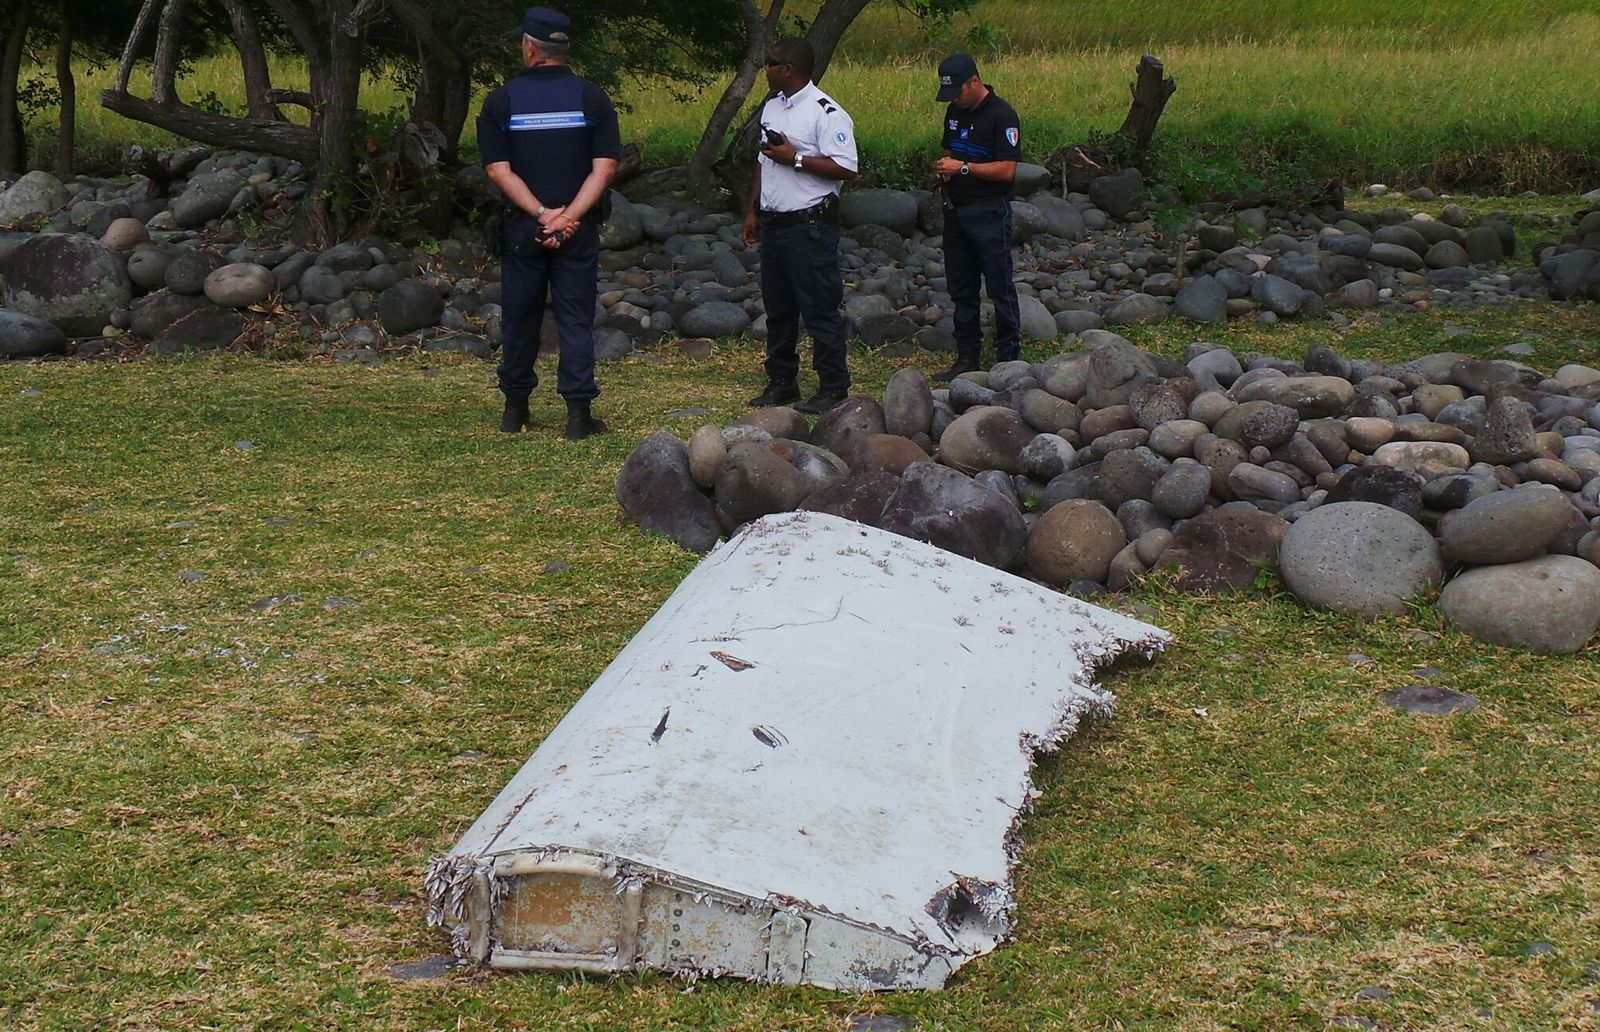 MALAYSIA-AIRLINES/CRASH